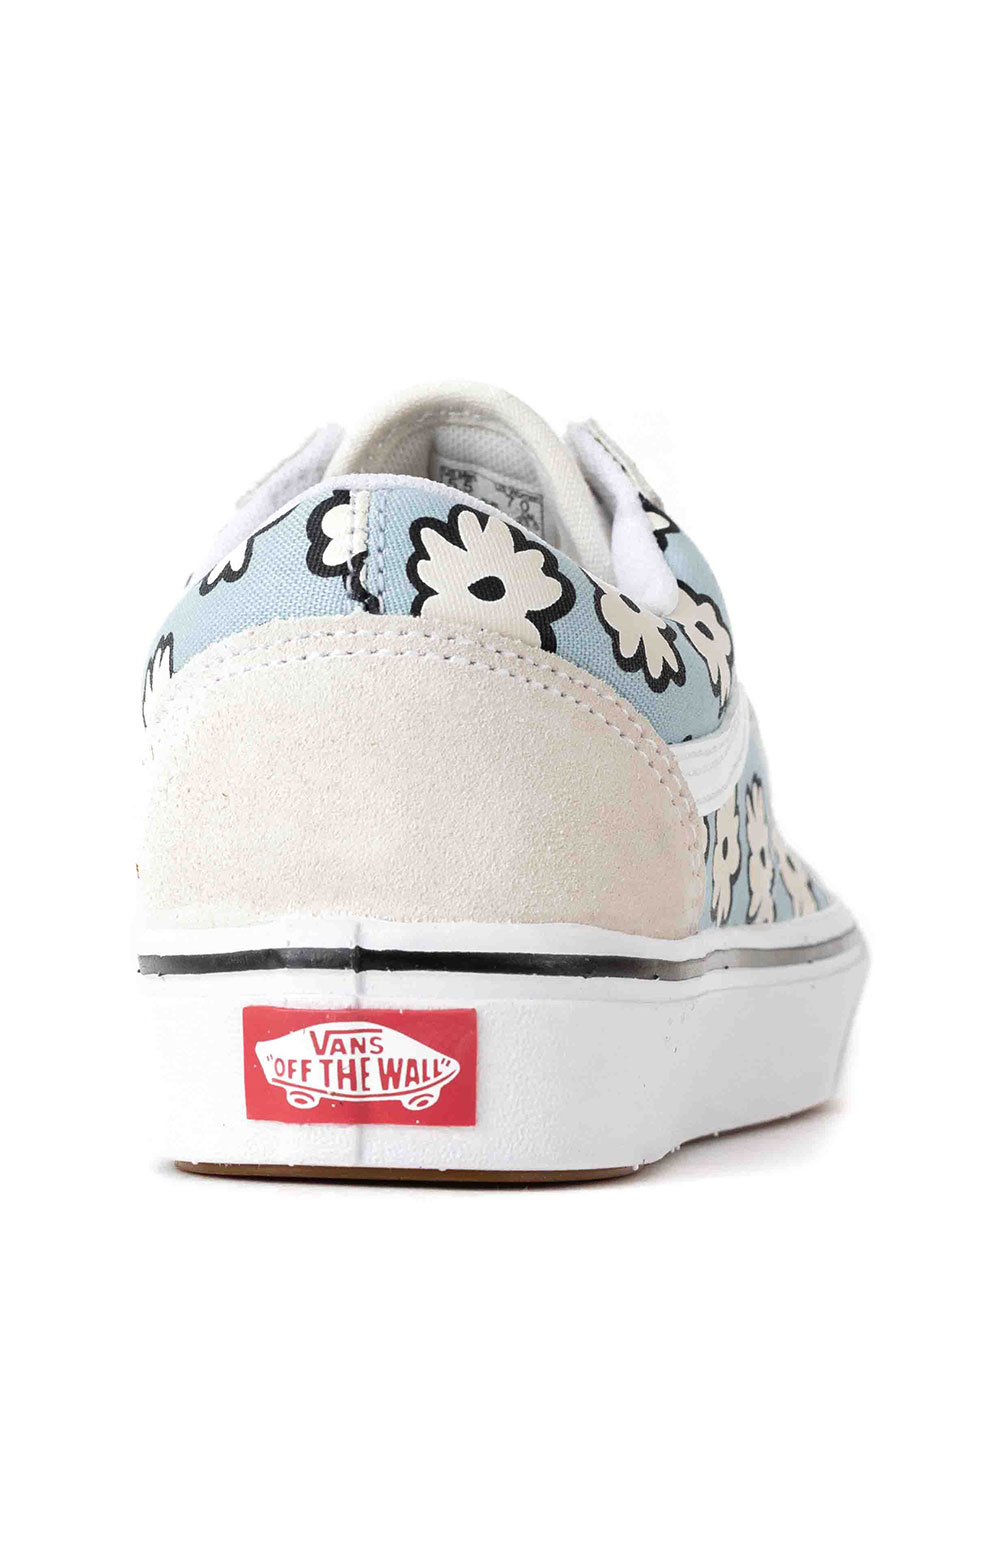 (DYC9KR) Mixed Cozy Comfycush Old Skool Shoes - Marshmallow/Pastel 5